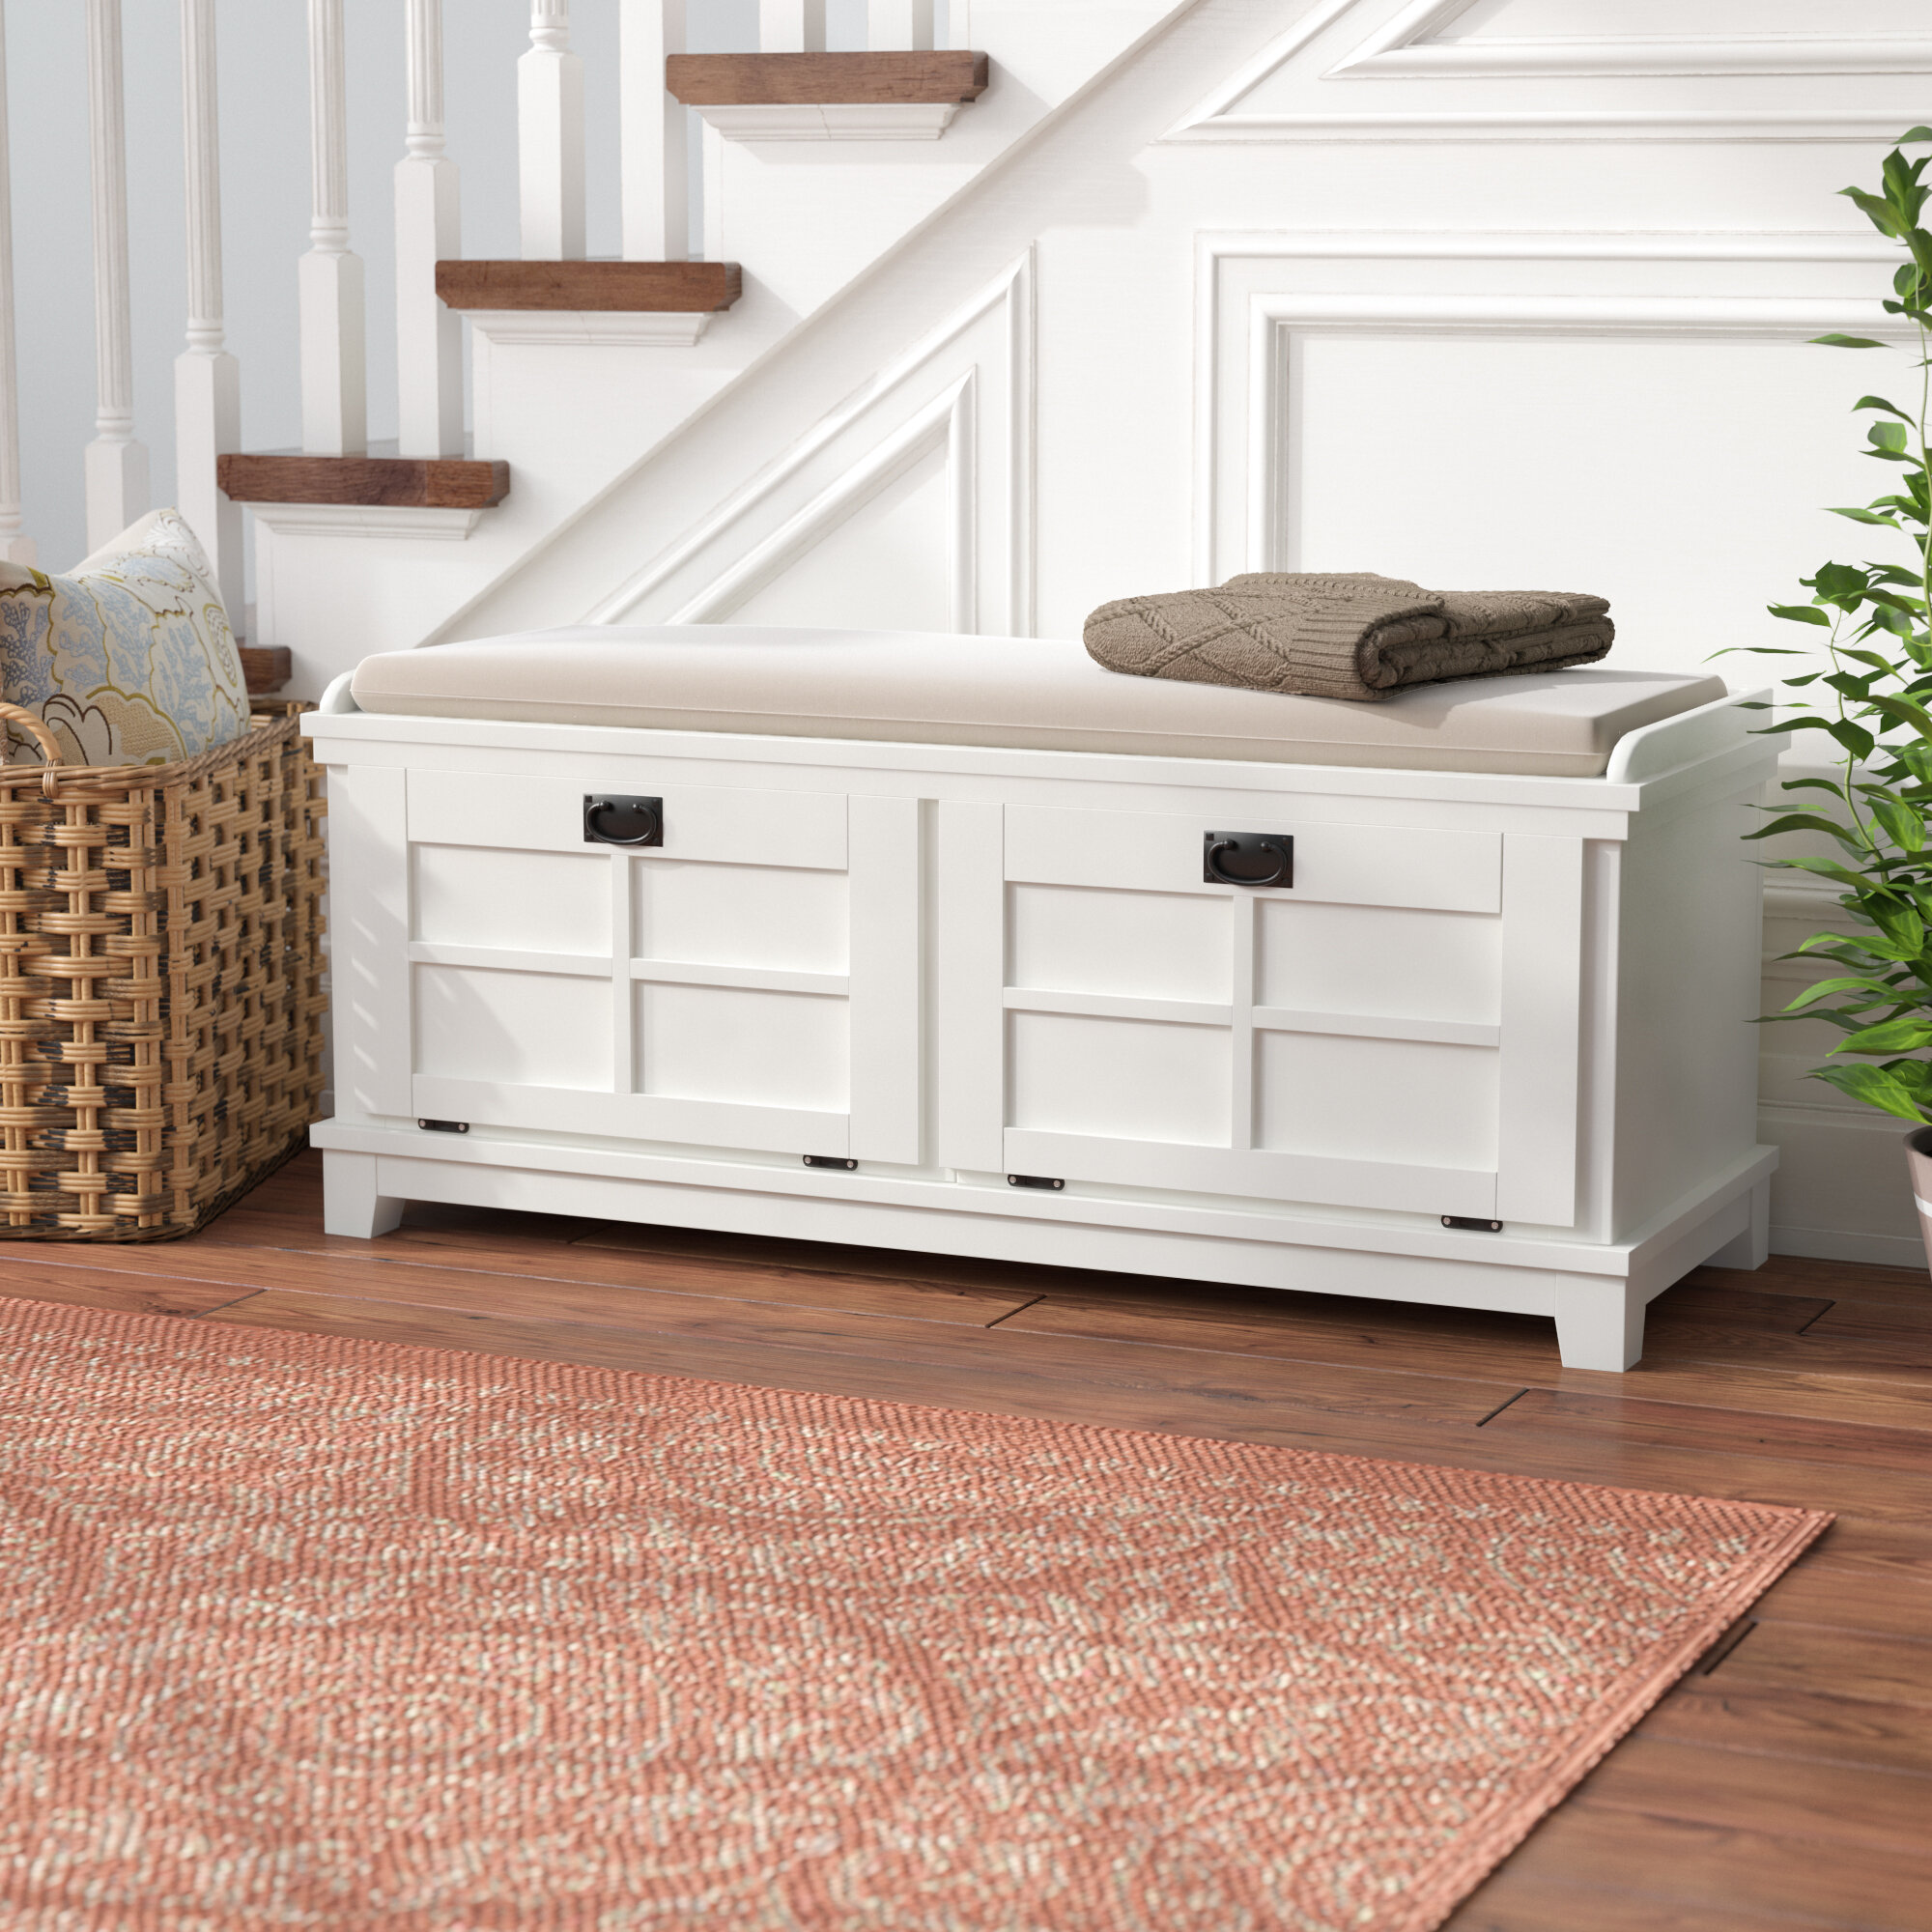 Fabulous Ferryhill Wood Storage Bench Caraccident5 Cool Chair Designs And Ideas Caraccident5Info